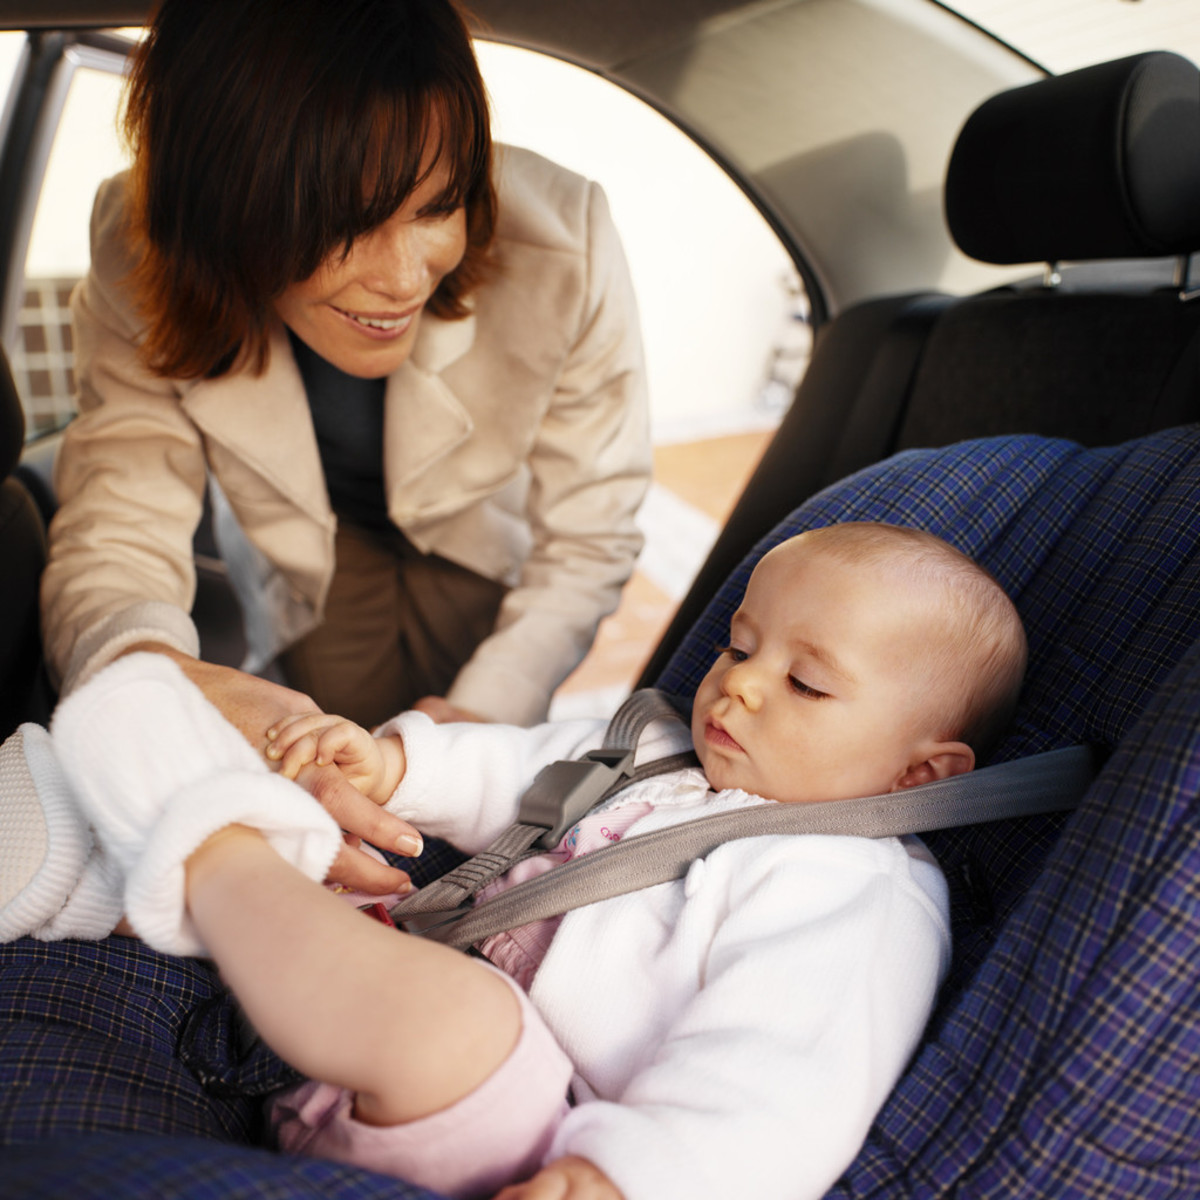 How Long Does a Child Need a Car Seat or Booster Seat?